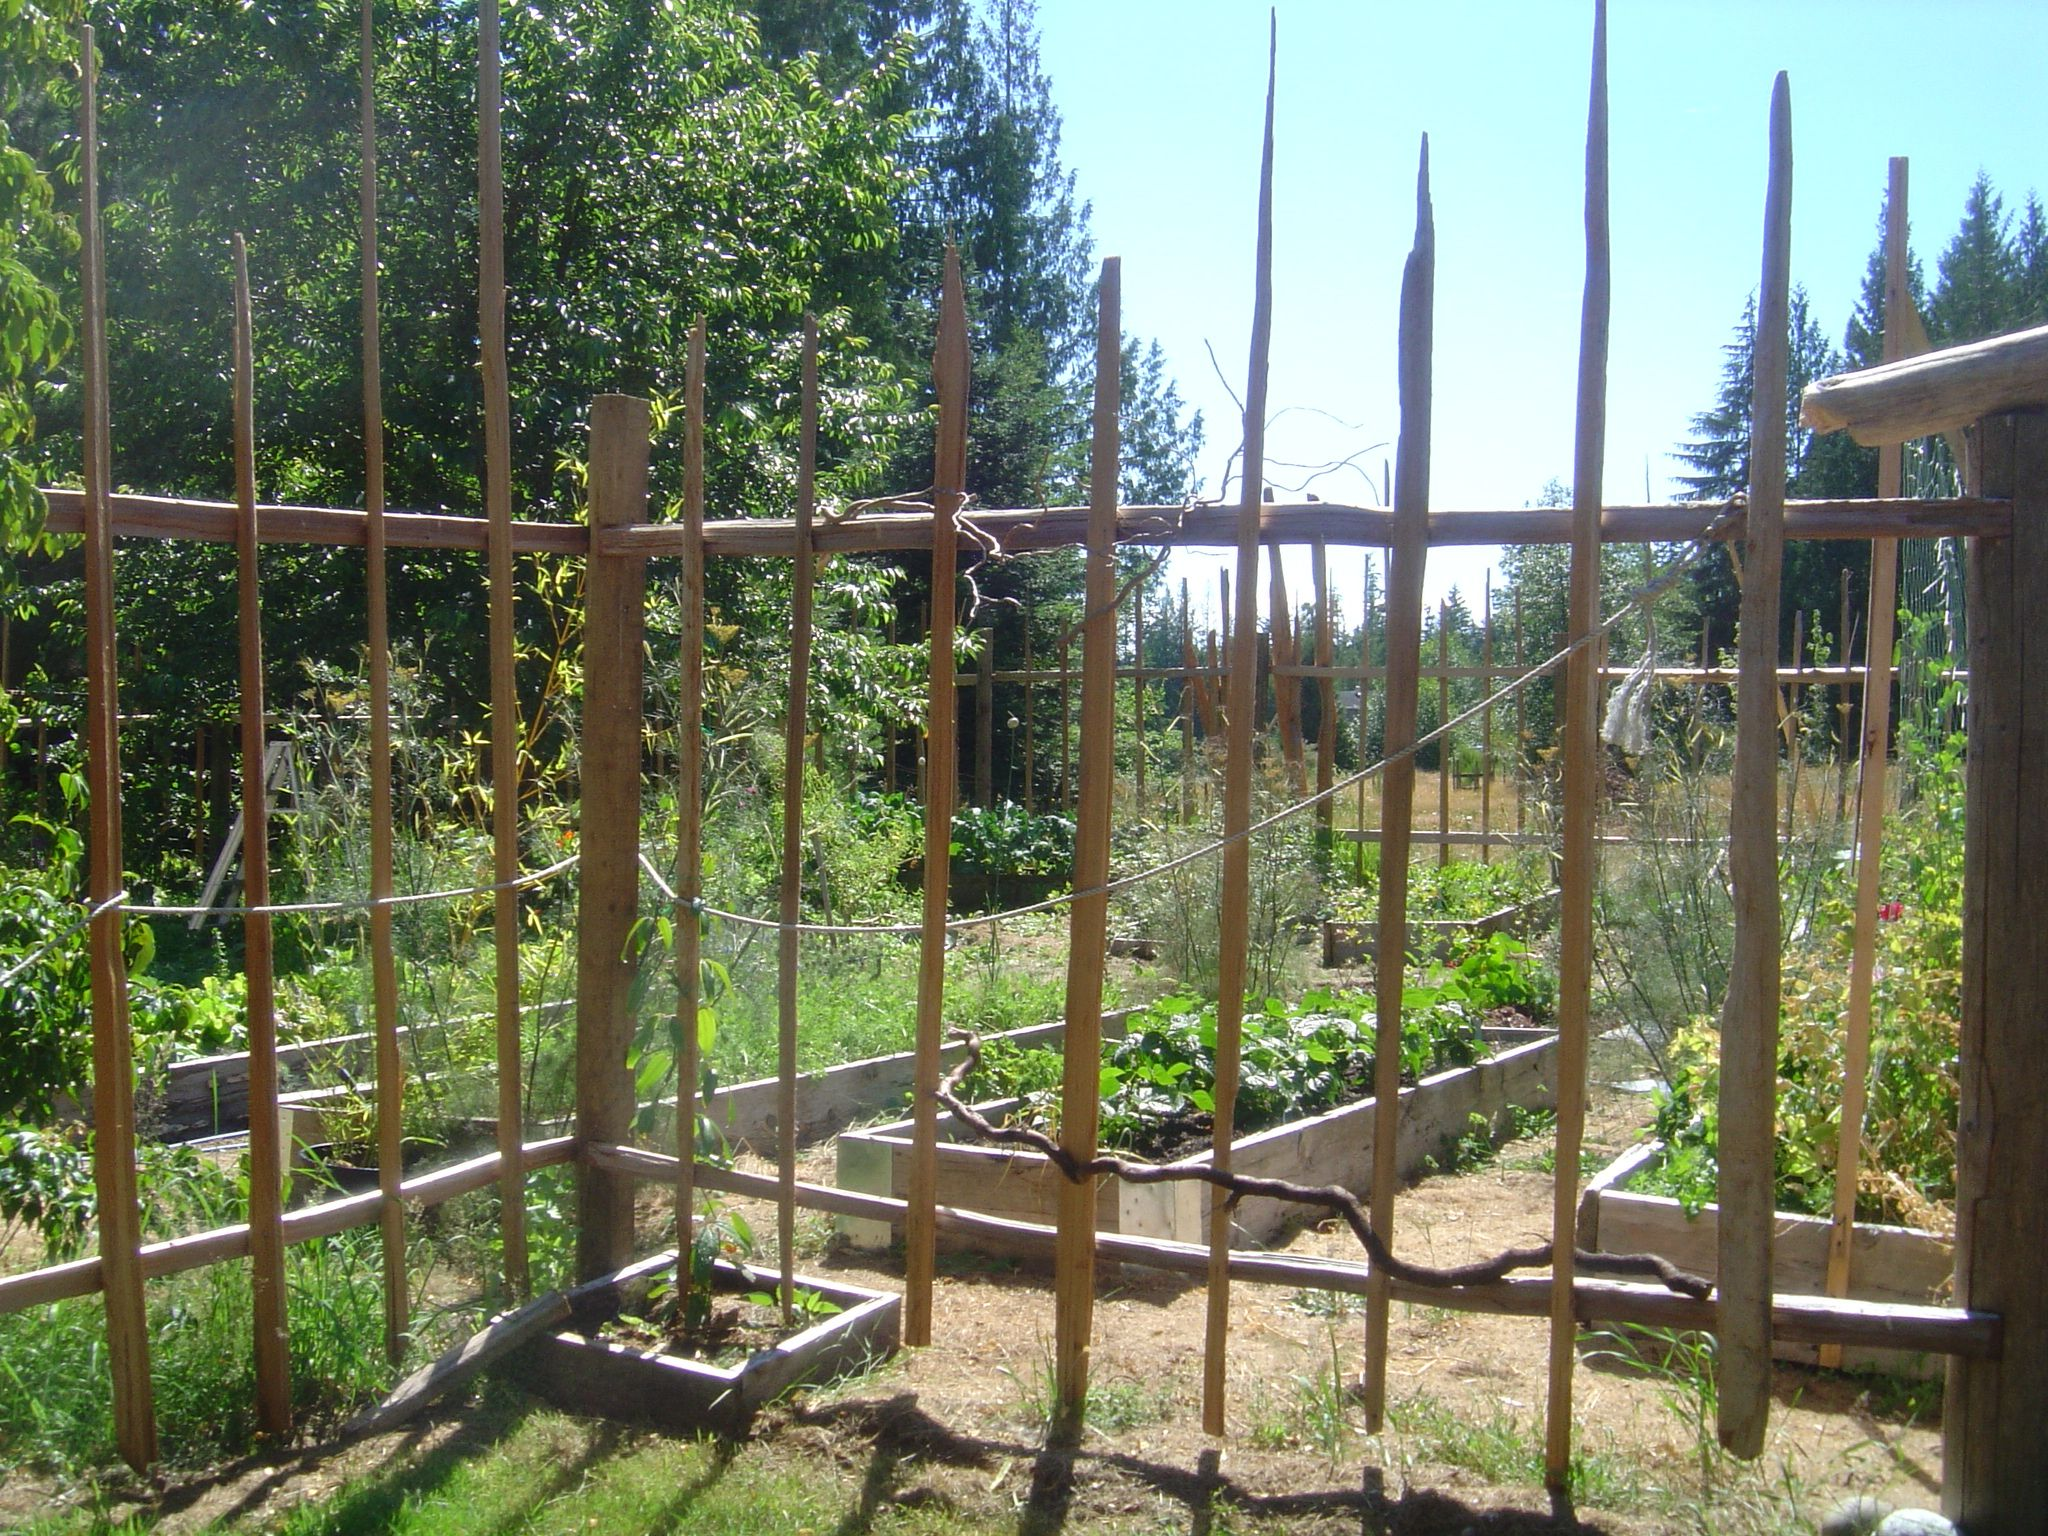 garden deer fencing ideas photo - 10